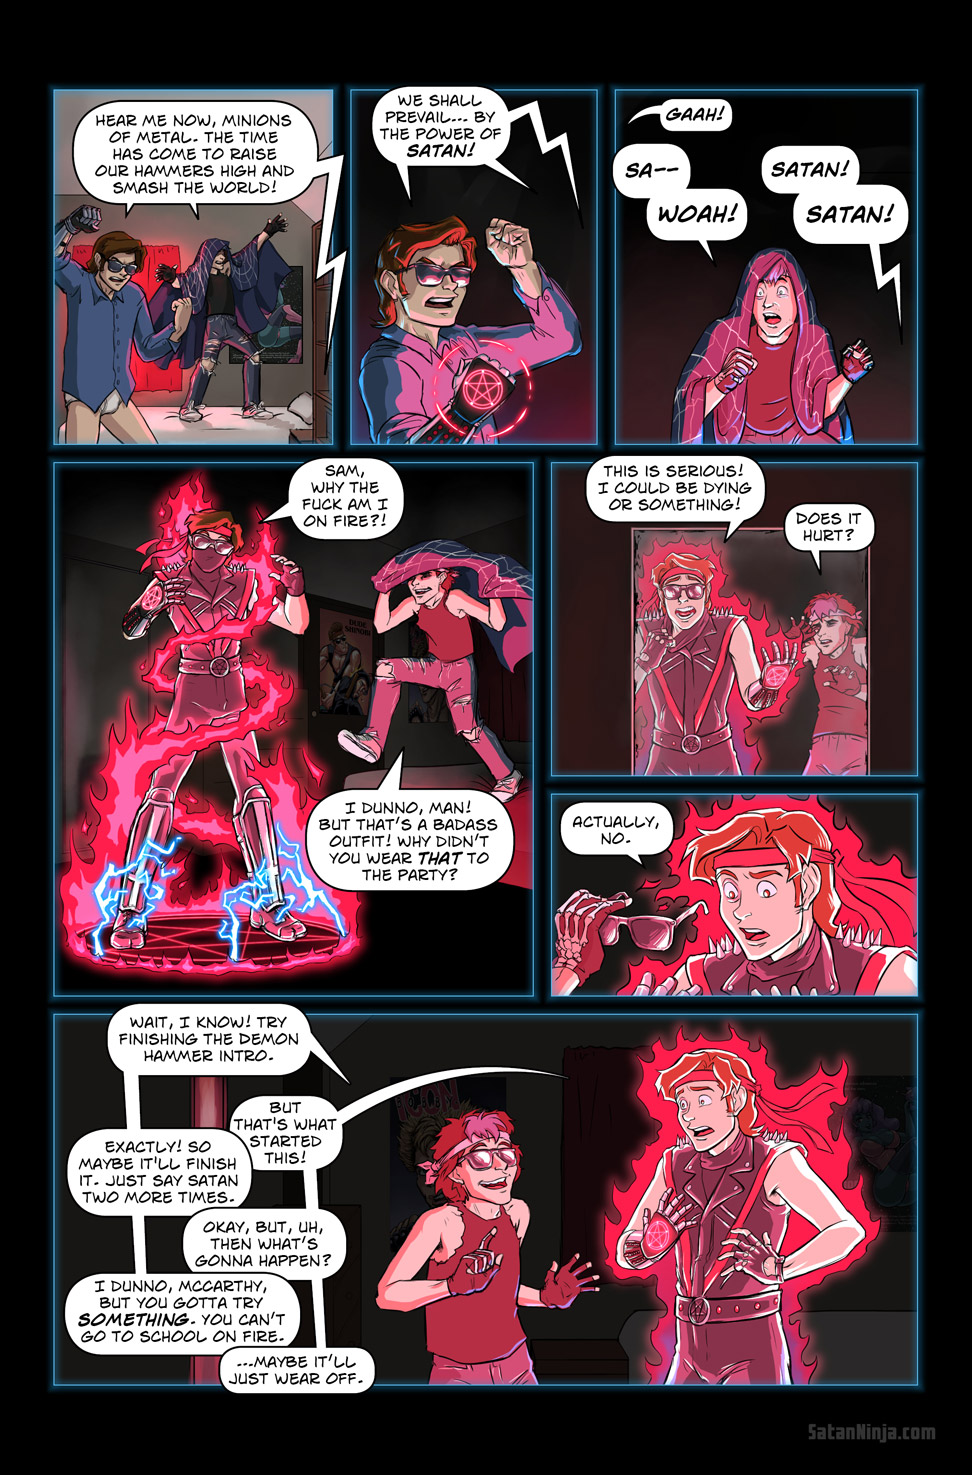 Issue 2, Page 32 - By the Power of Satan